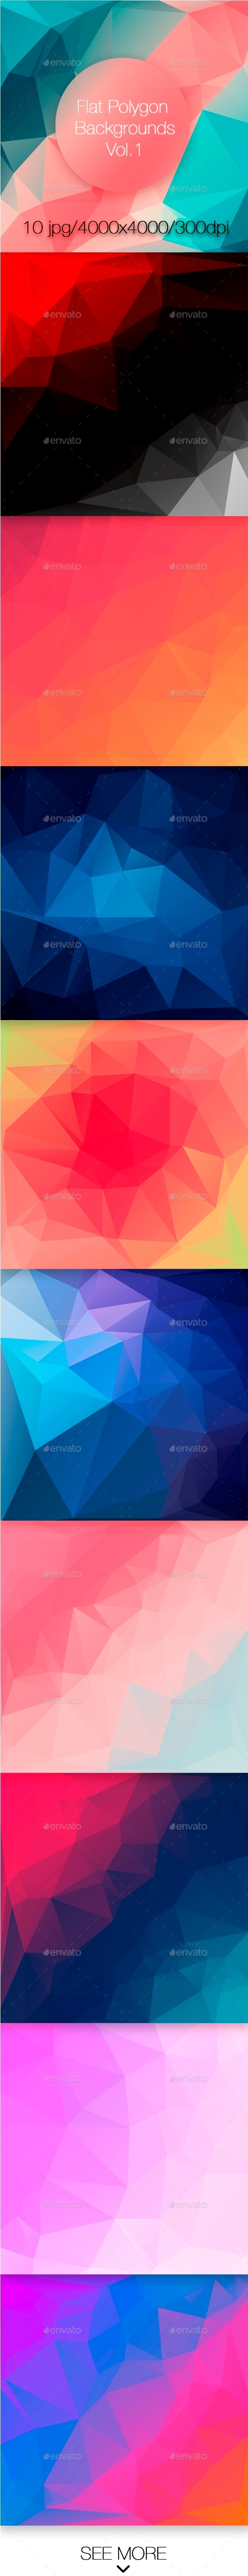 Flat Polygon Backgrounds Vol.1 - Abstract Backgrounds